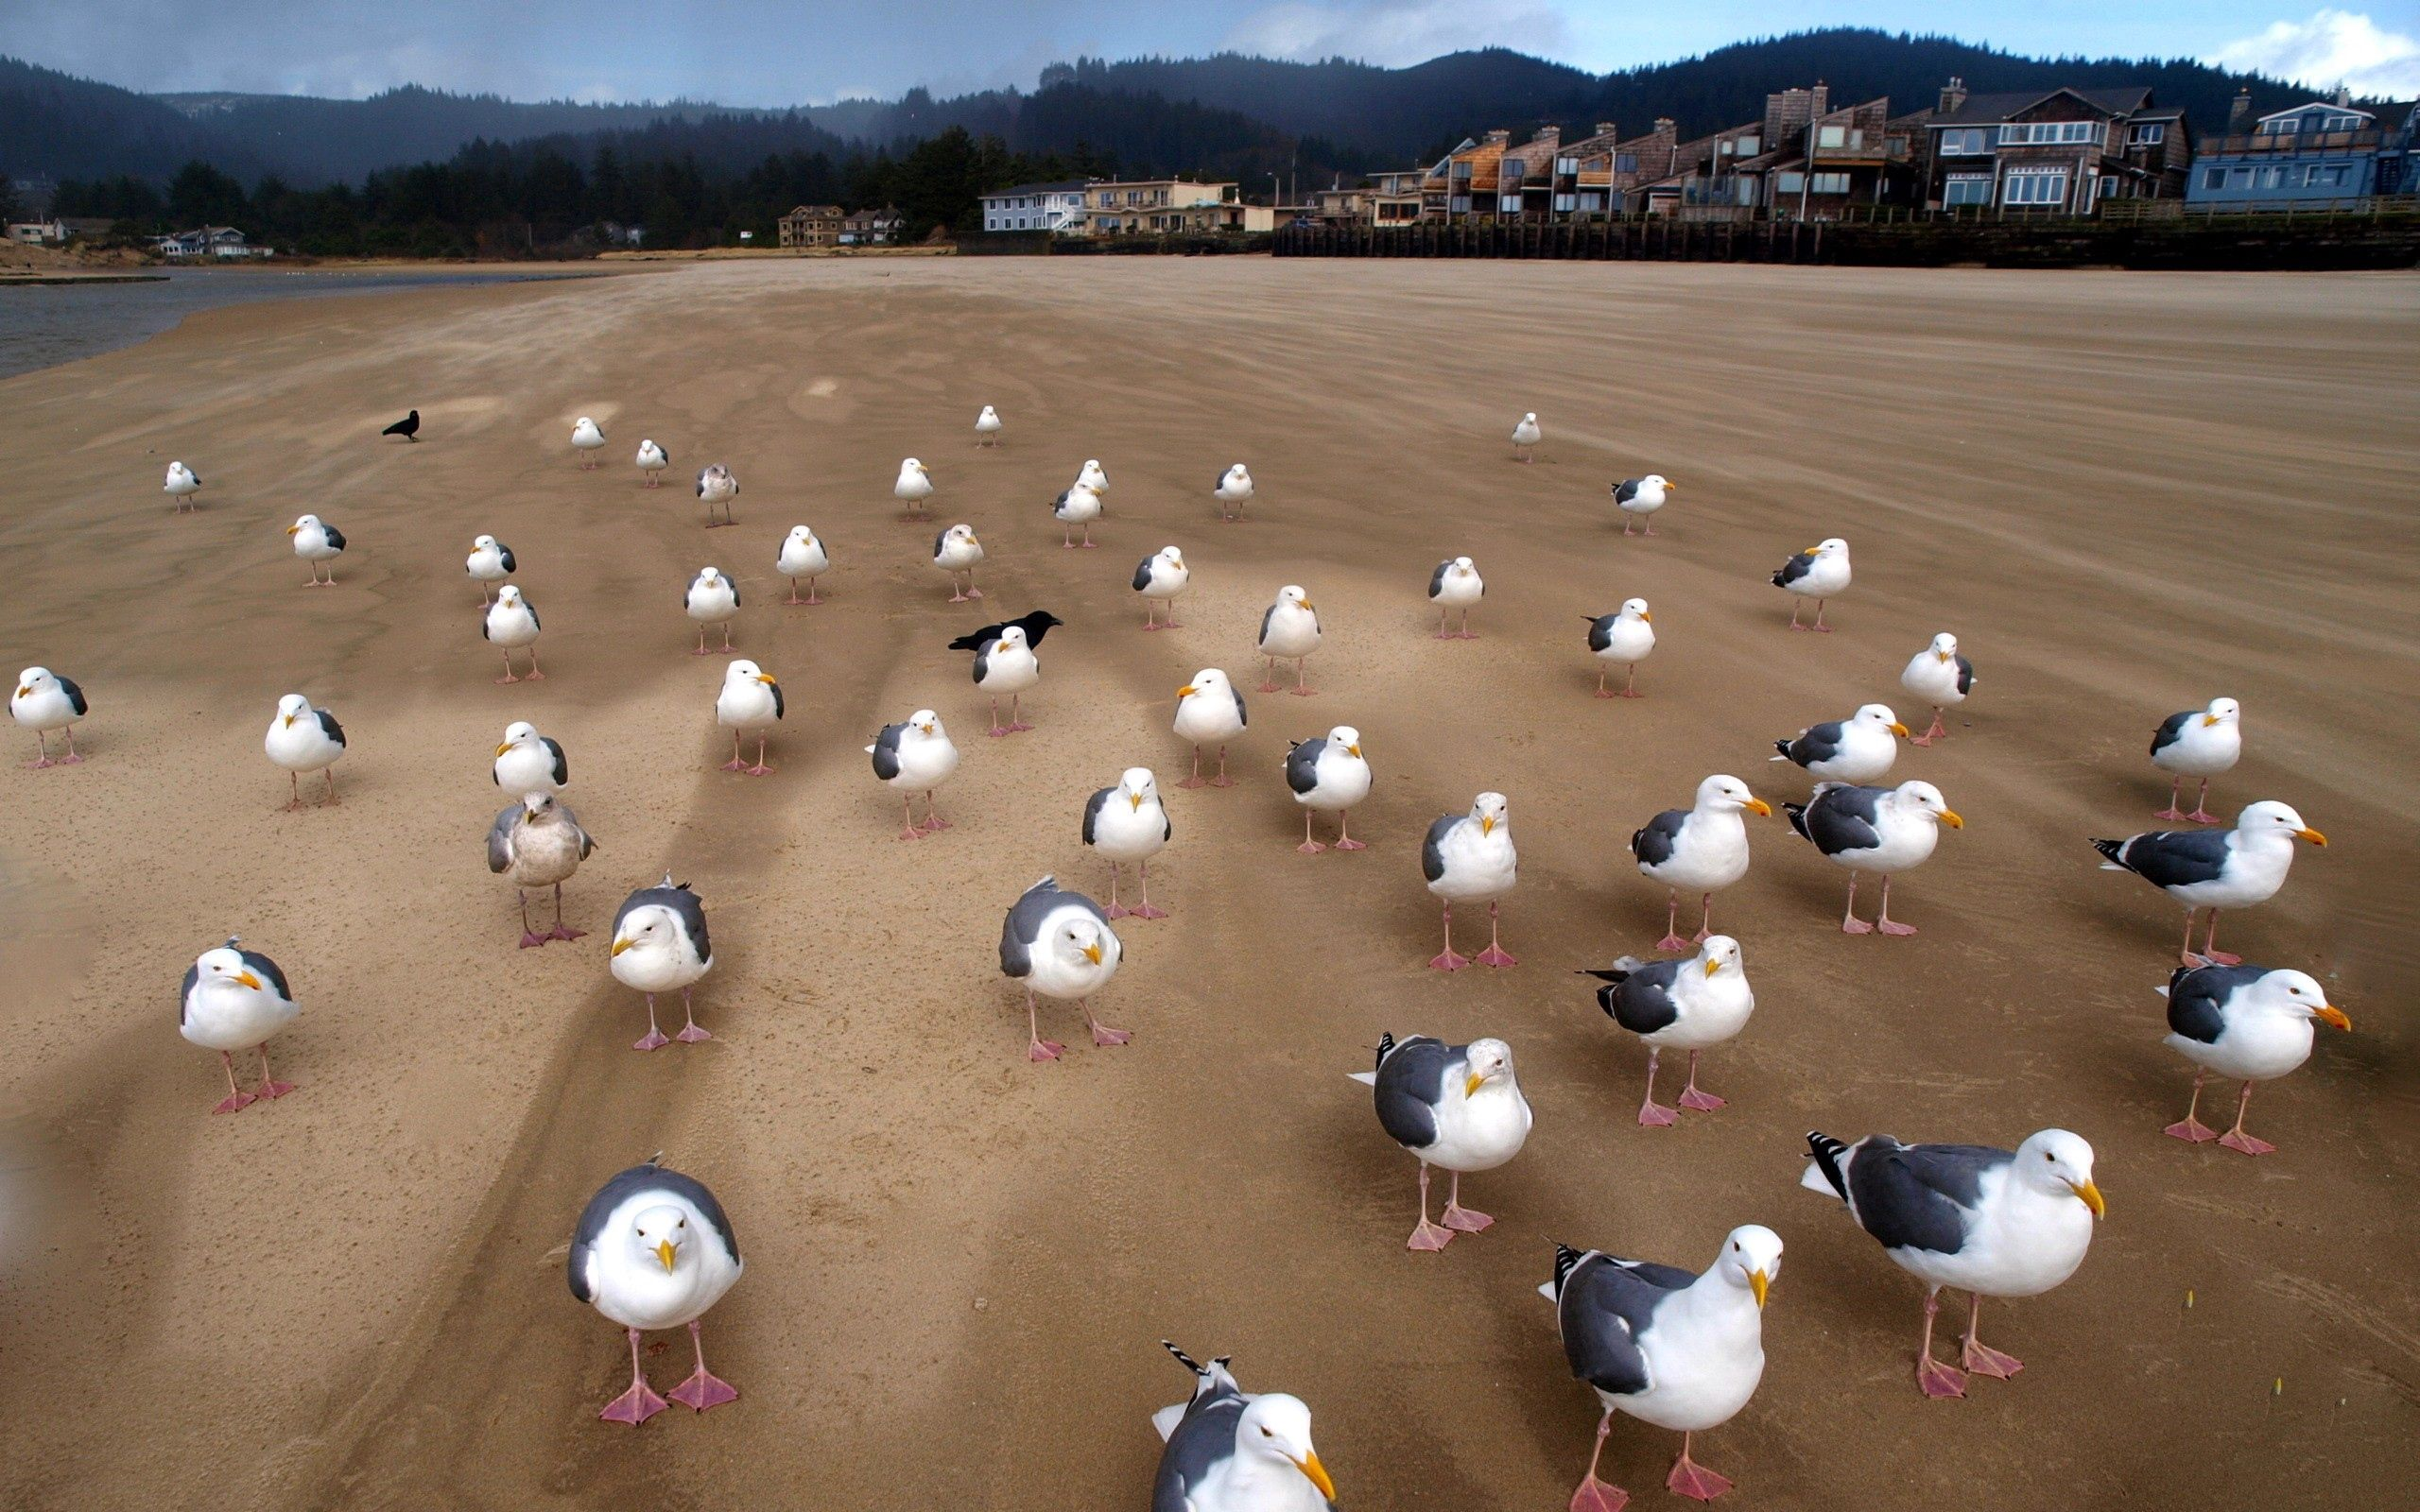 145167 download wallpaper Animals, Flock, Sand, Birds, Seagulls screensavers and pictures for free